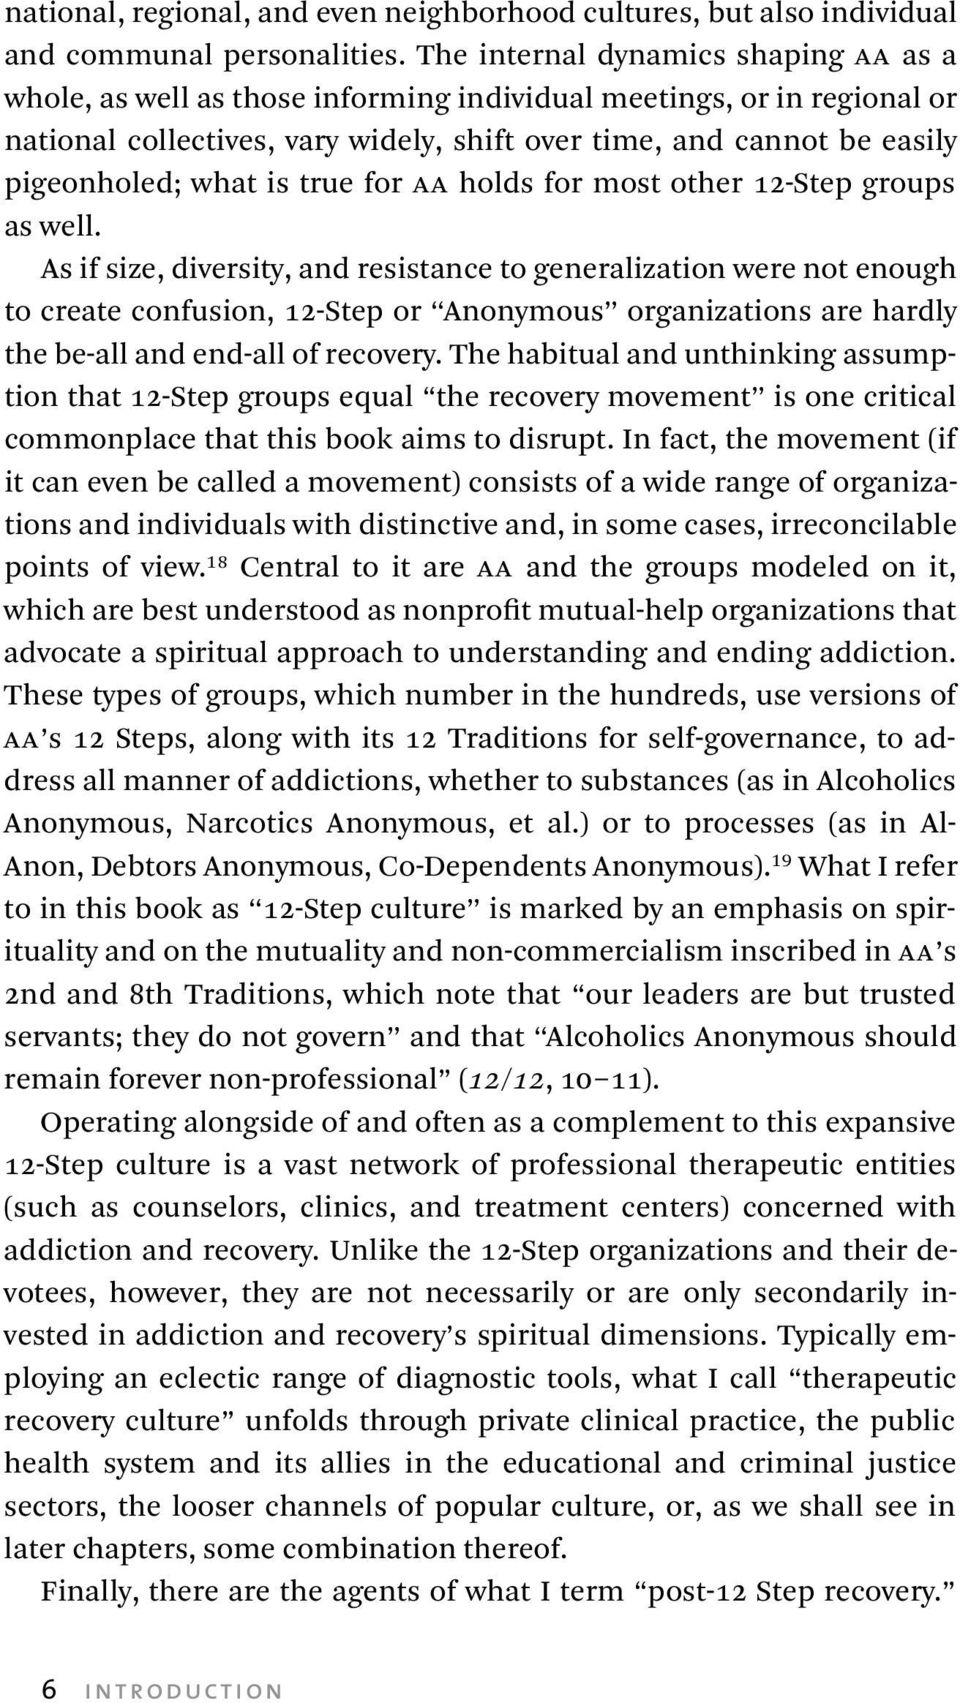 what is true for aa holds for most other 12-Step groups as well.